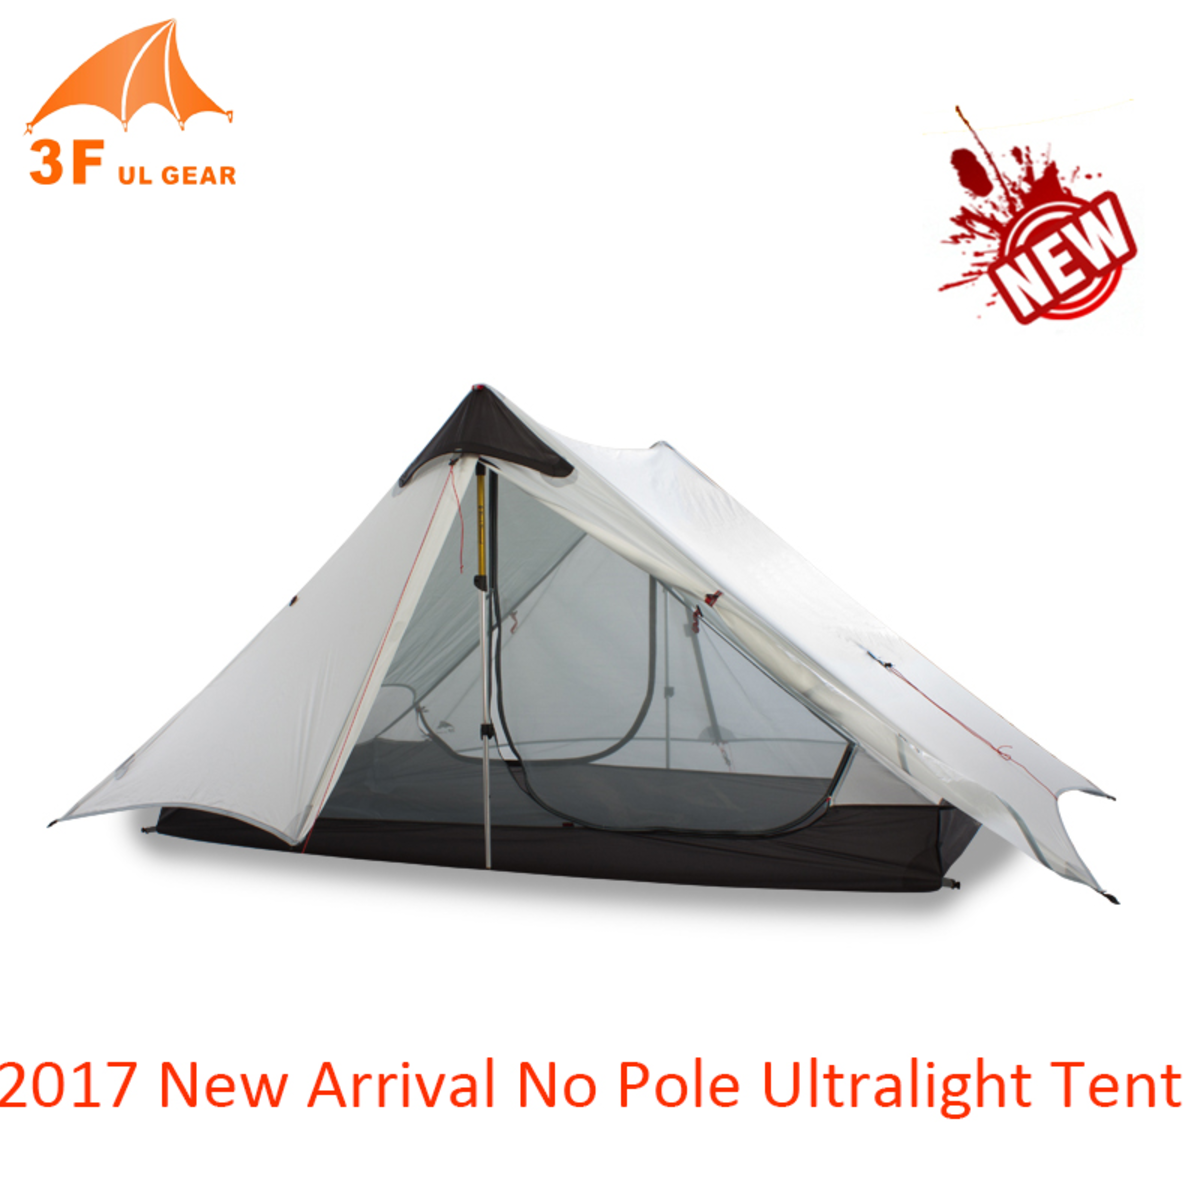 3f UL Lanshan Tent 1 person 2 Person ultralight tent 2 layer  sc 1 st  Hiker Outlet & UL Lanshan Tent 1 person 2 Person ultralight tent 2 layer